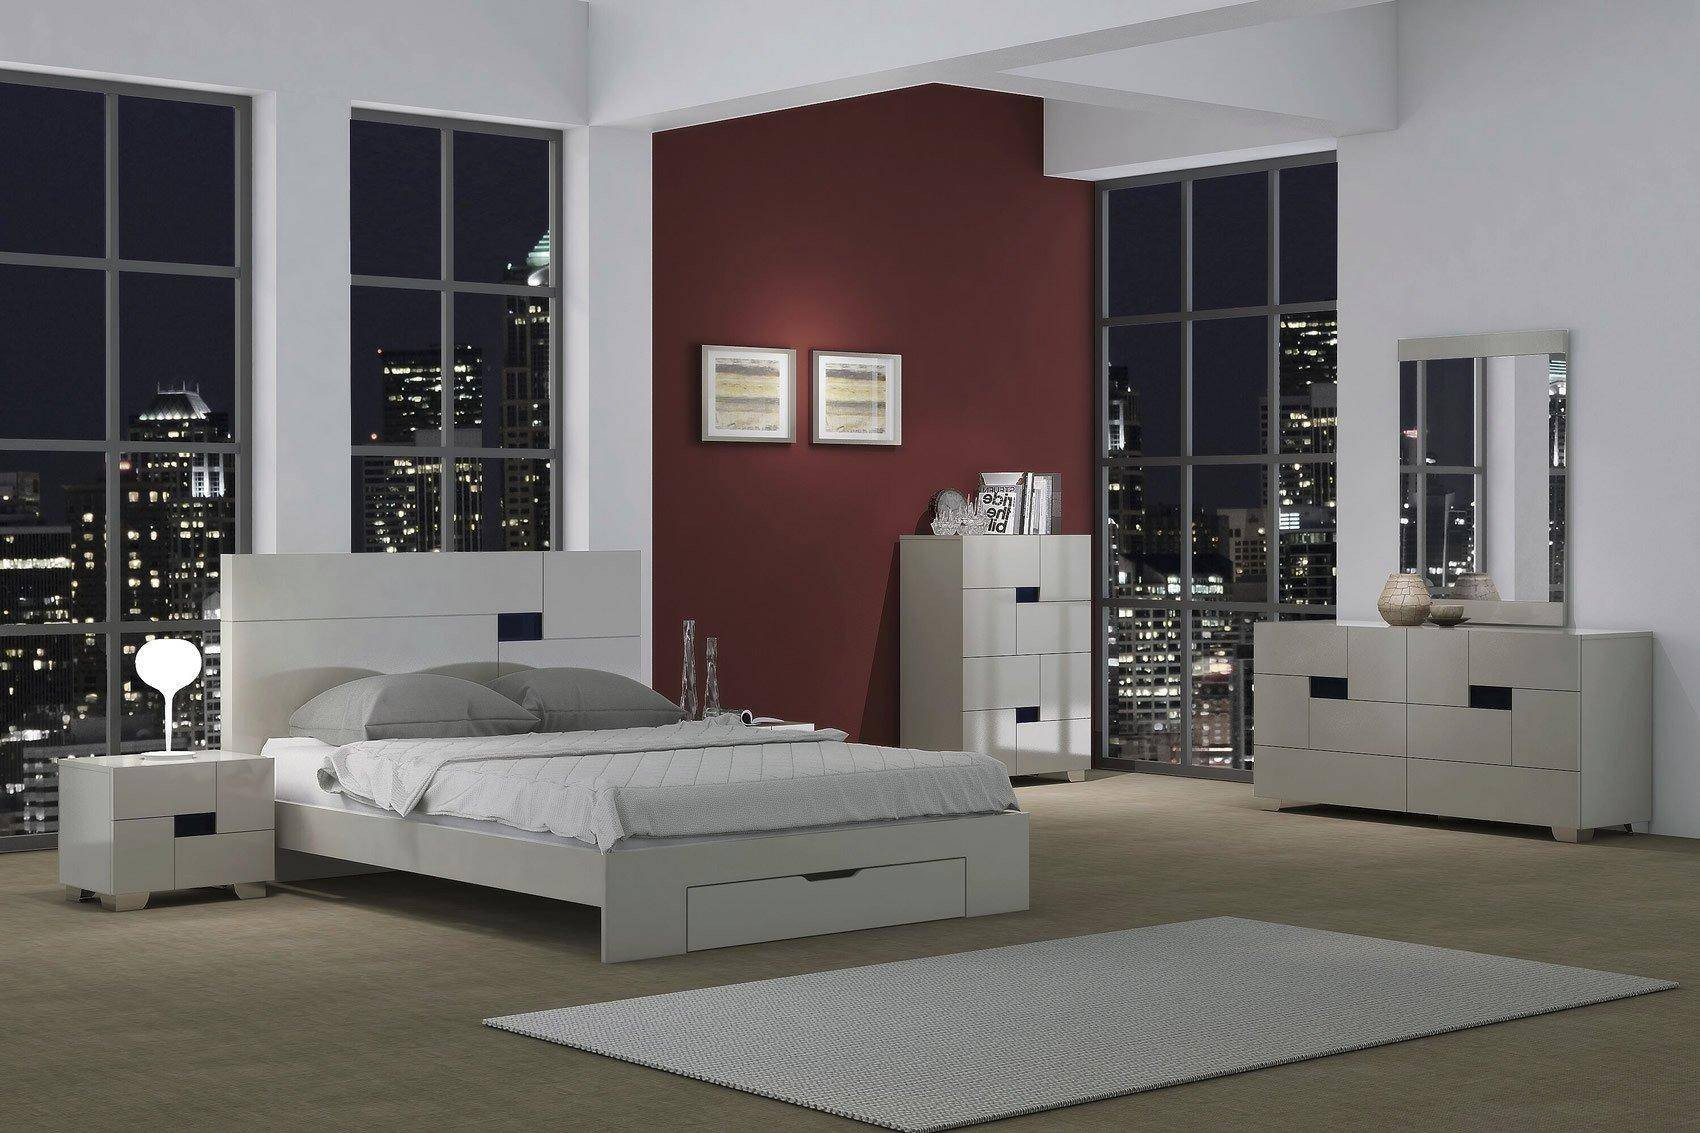 Monte Carlo Bedroom Set Lovely Contemporary Light Gray Lacquer Storage Queen Bedroom Set